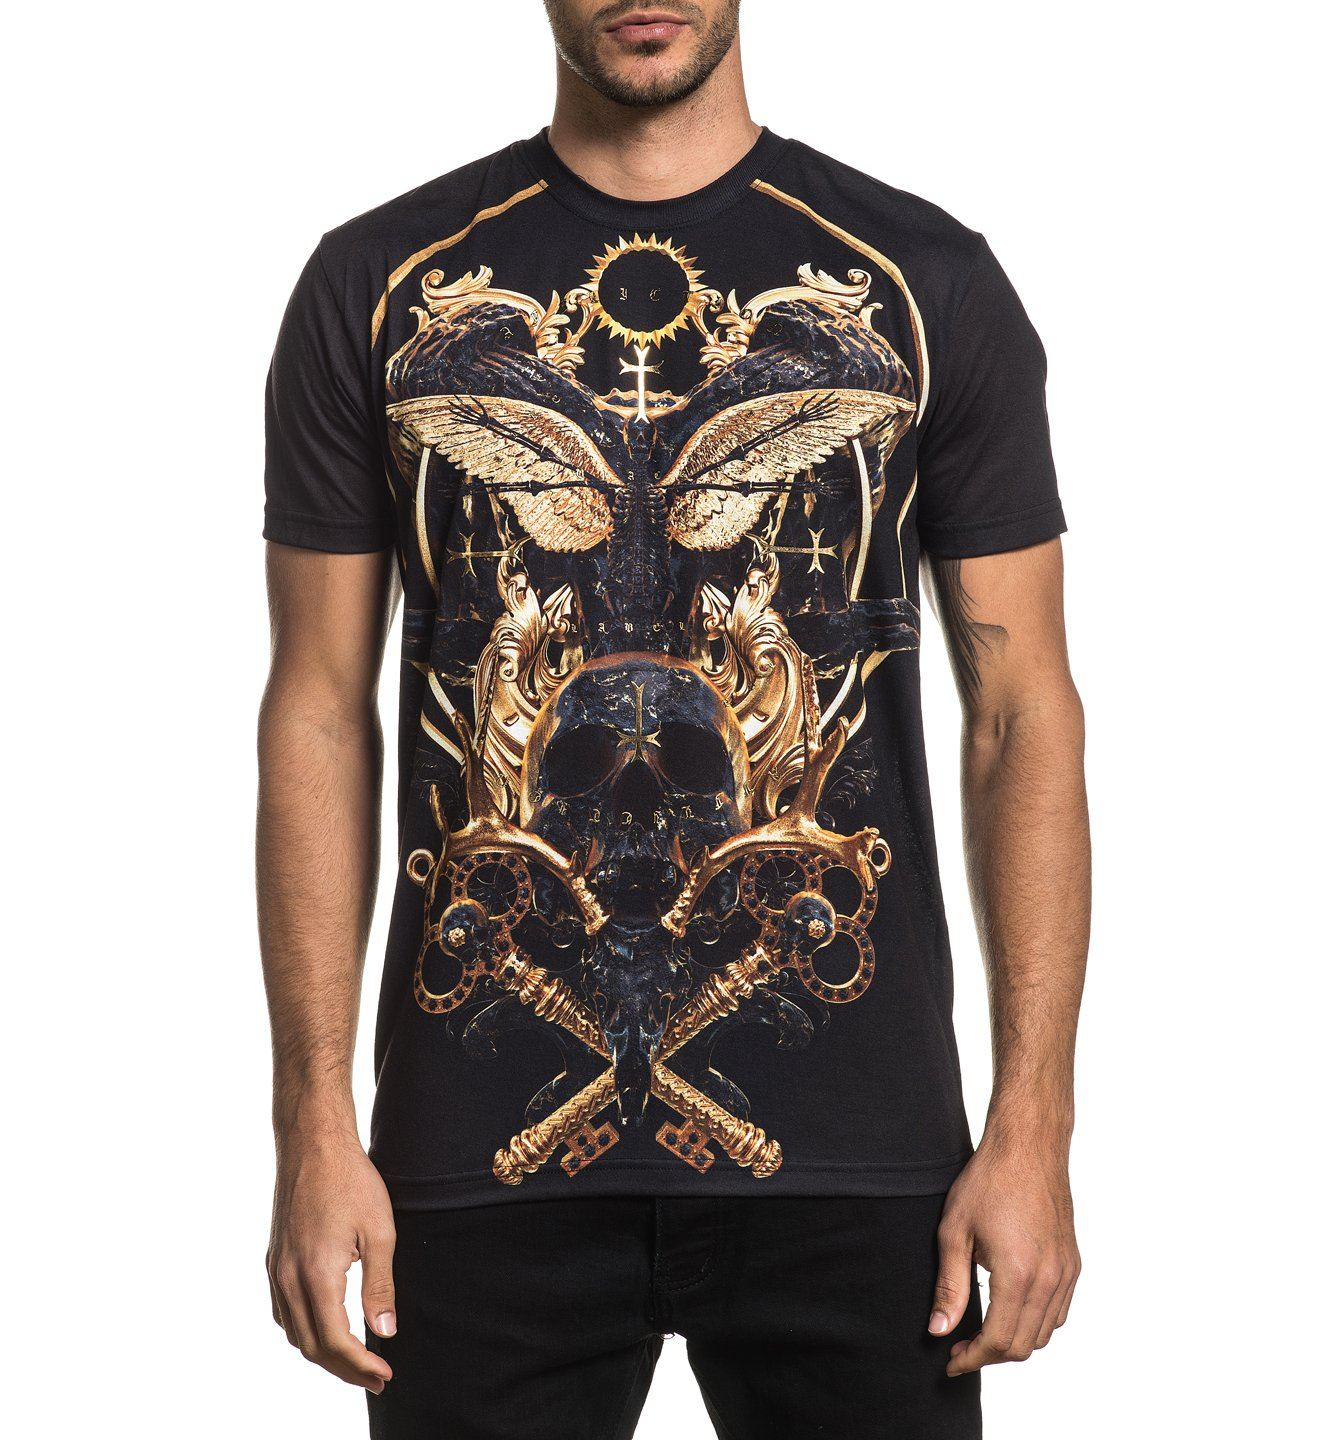 Mens Short Sleeve Tees - Totem